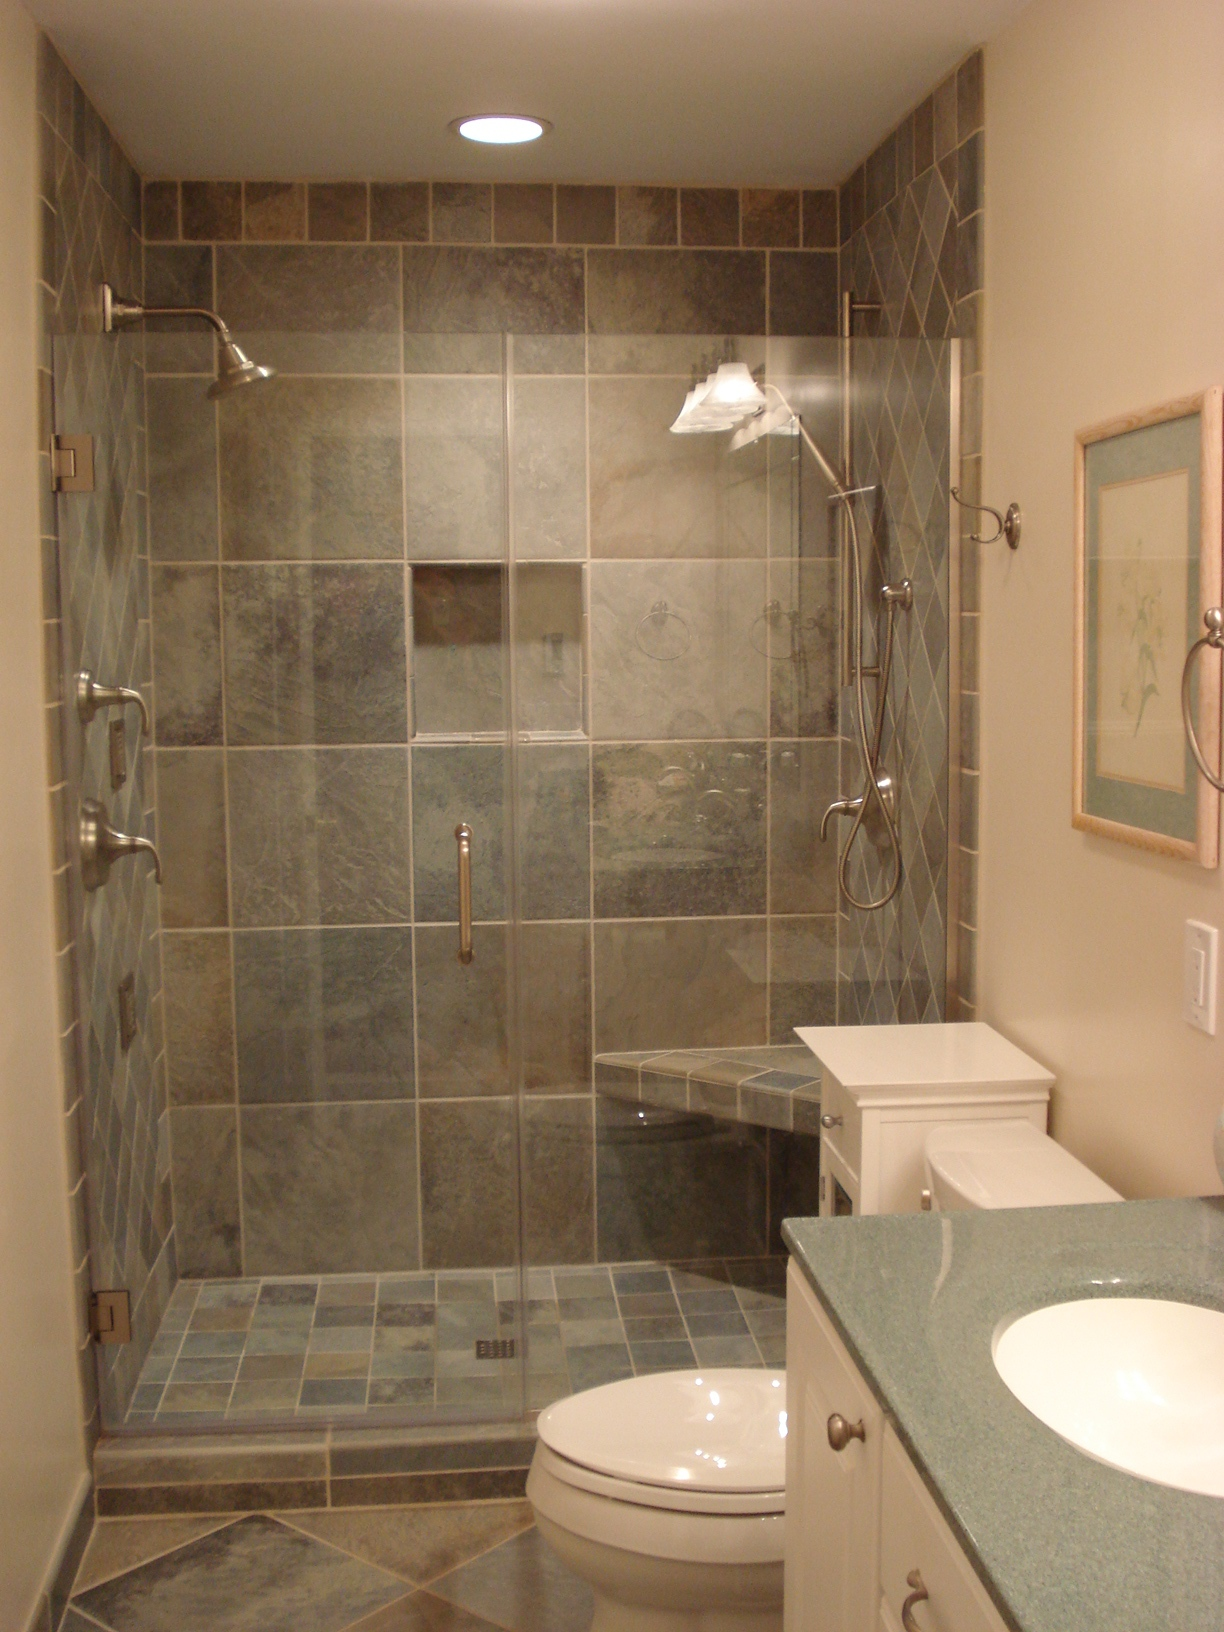 Lifetime design build inc completed projects for Small bathroom redesign